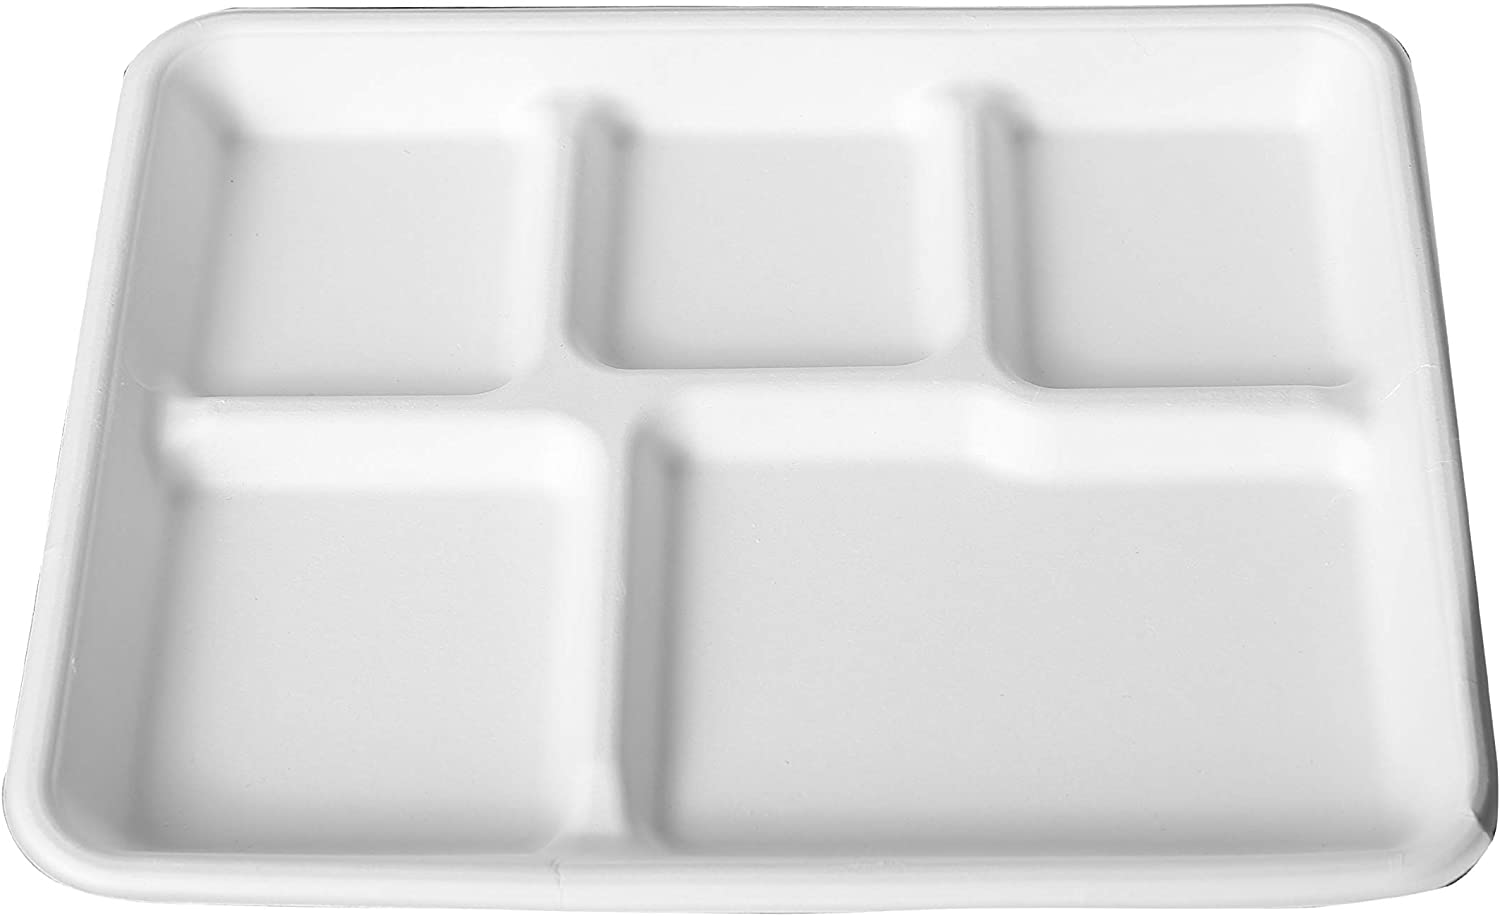 E.F.tableware 100% Compostable Plate 100-Pack 5-Compartment Disposable Tray, Eco-Friendly Made of Sugar Cane Fibers